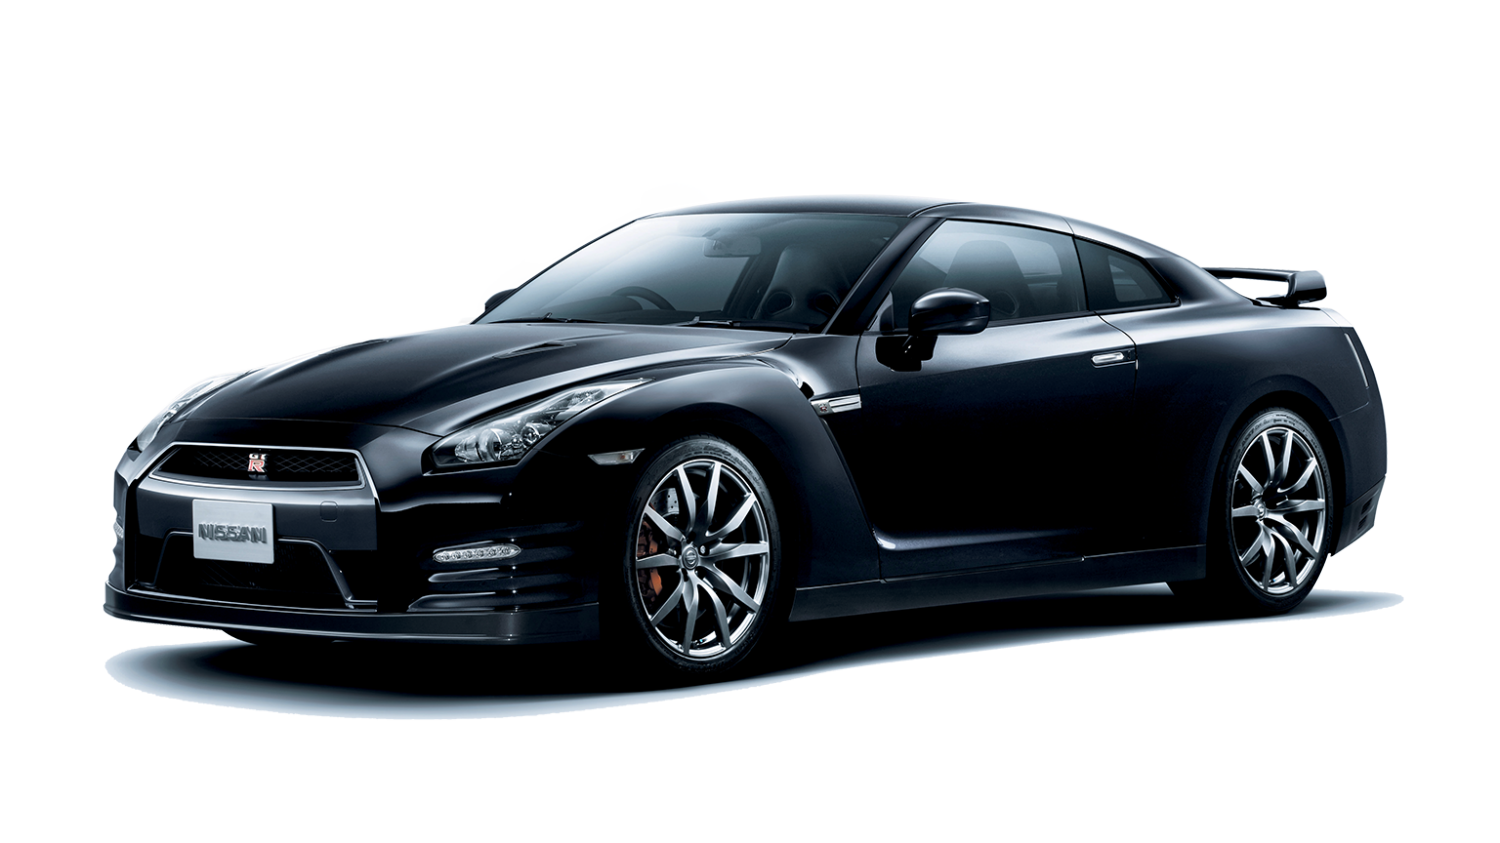 Nissan GT-R Black Edition - 3/4 front view